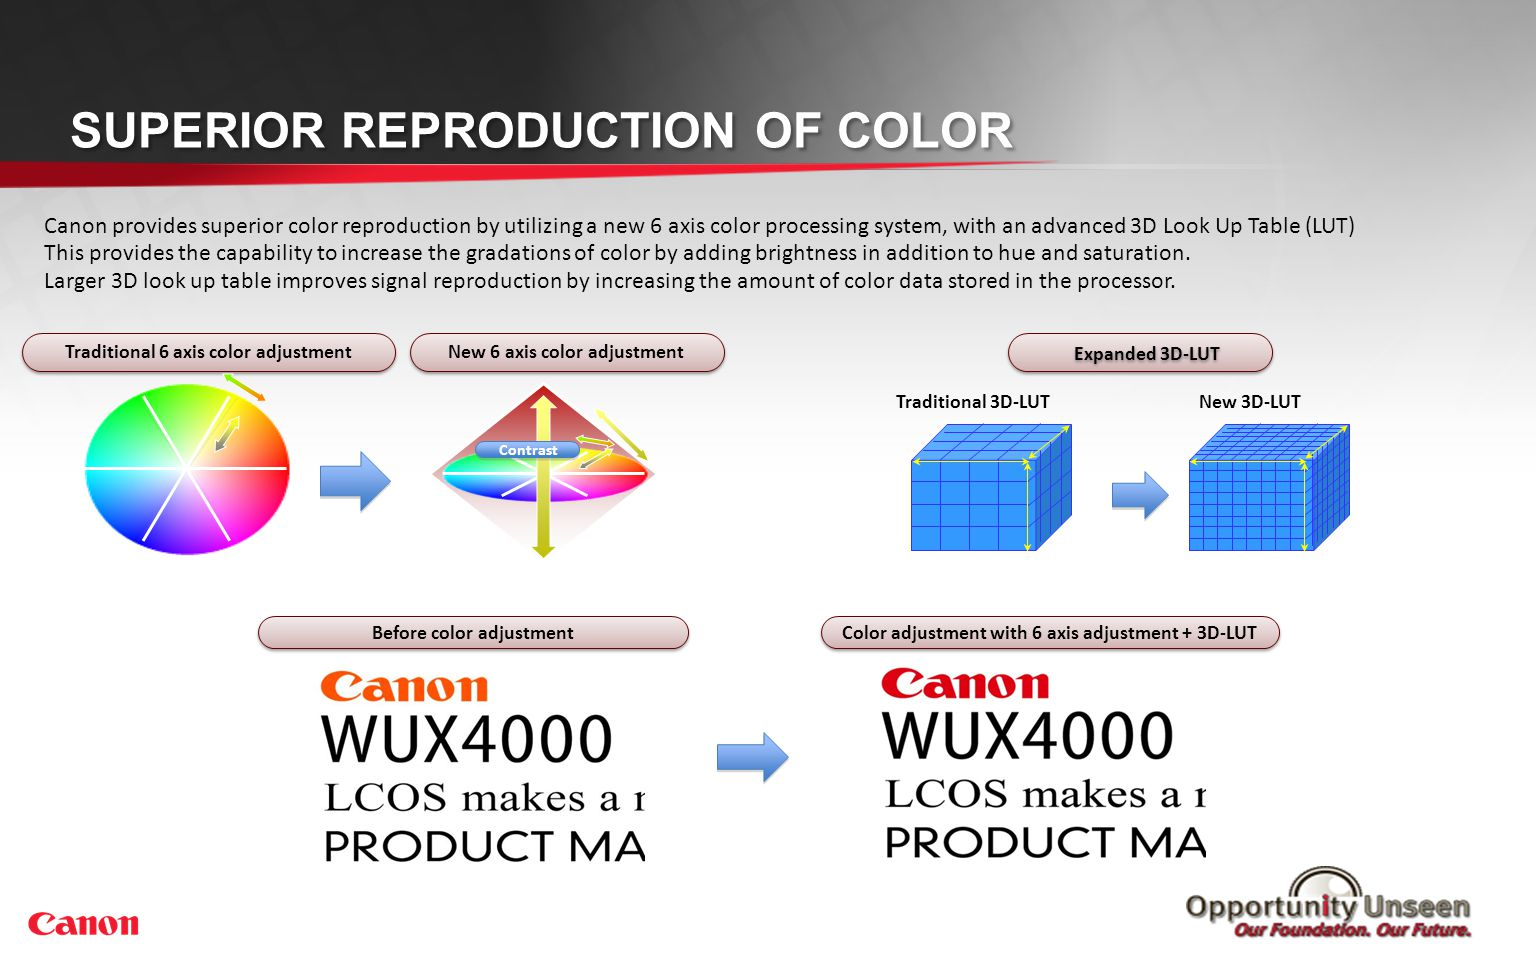 Color adjustment with 6 axis adjustment + 3D-LUTBefore color adjustment Canon provides superior color reproduction by utilizing a new 6 axis color pro